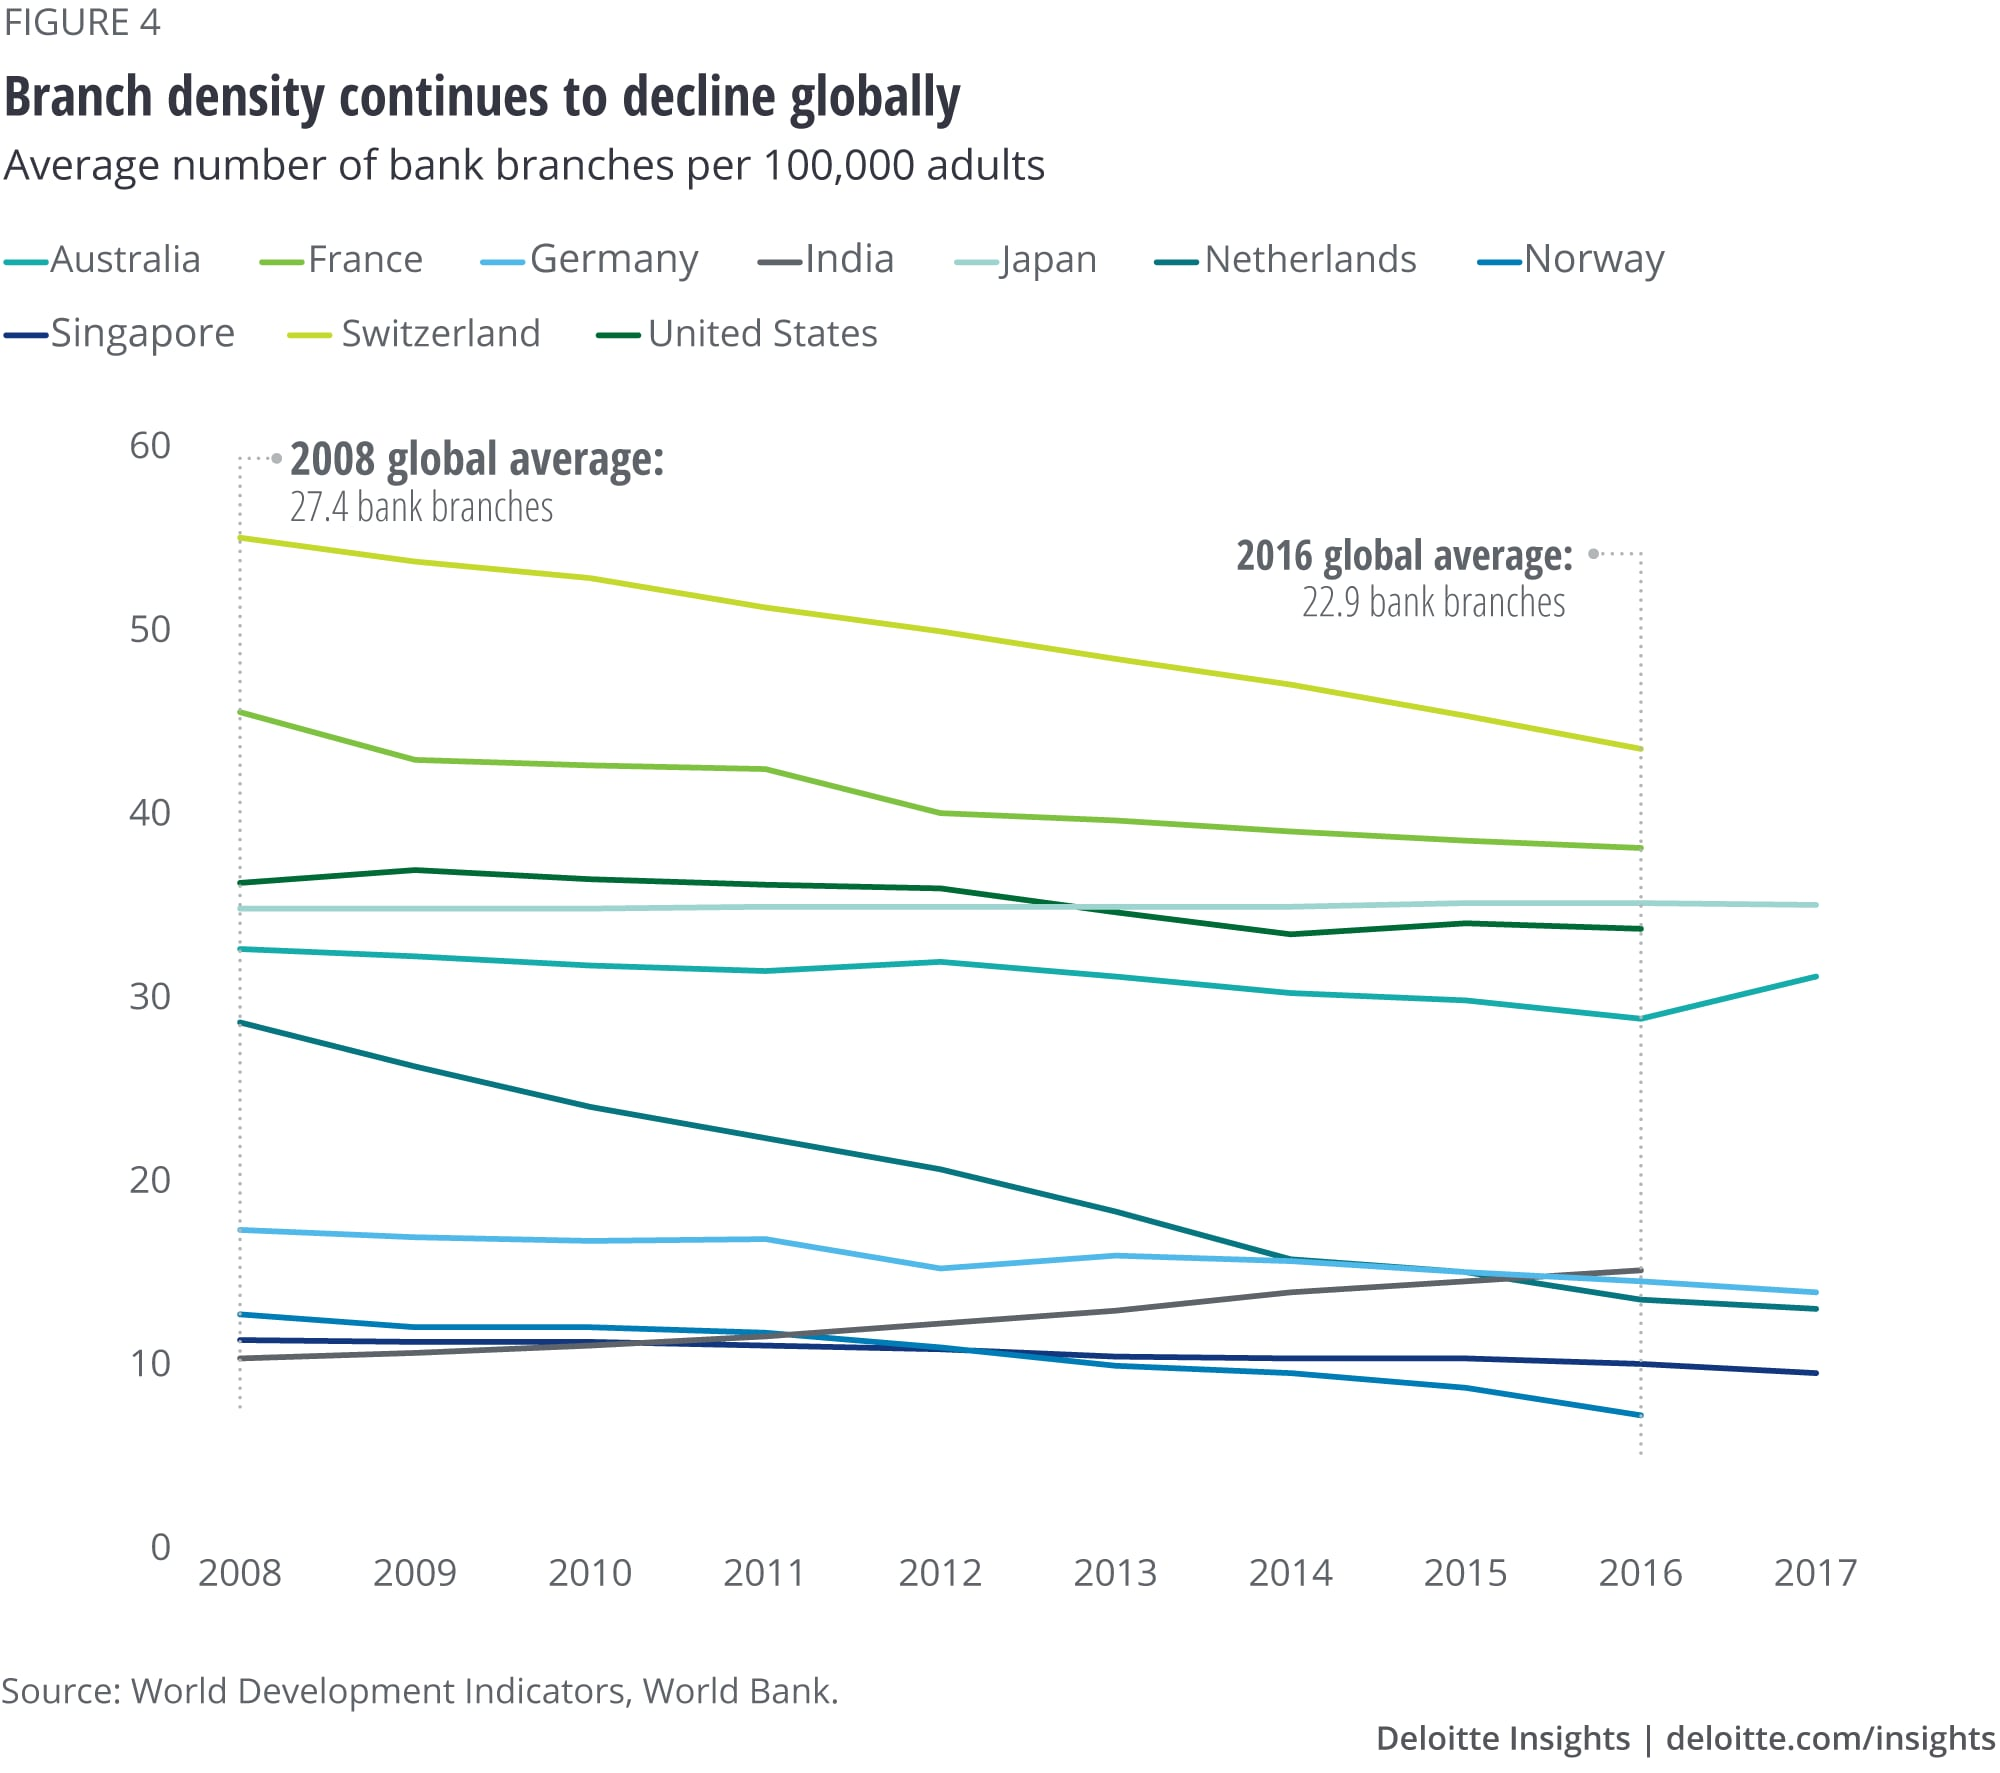 Branch density continues to decline globally